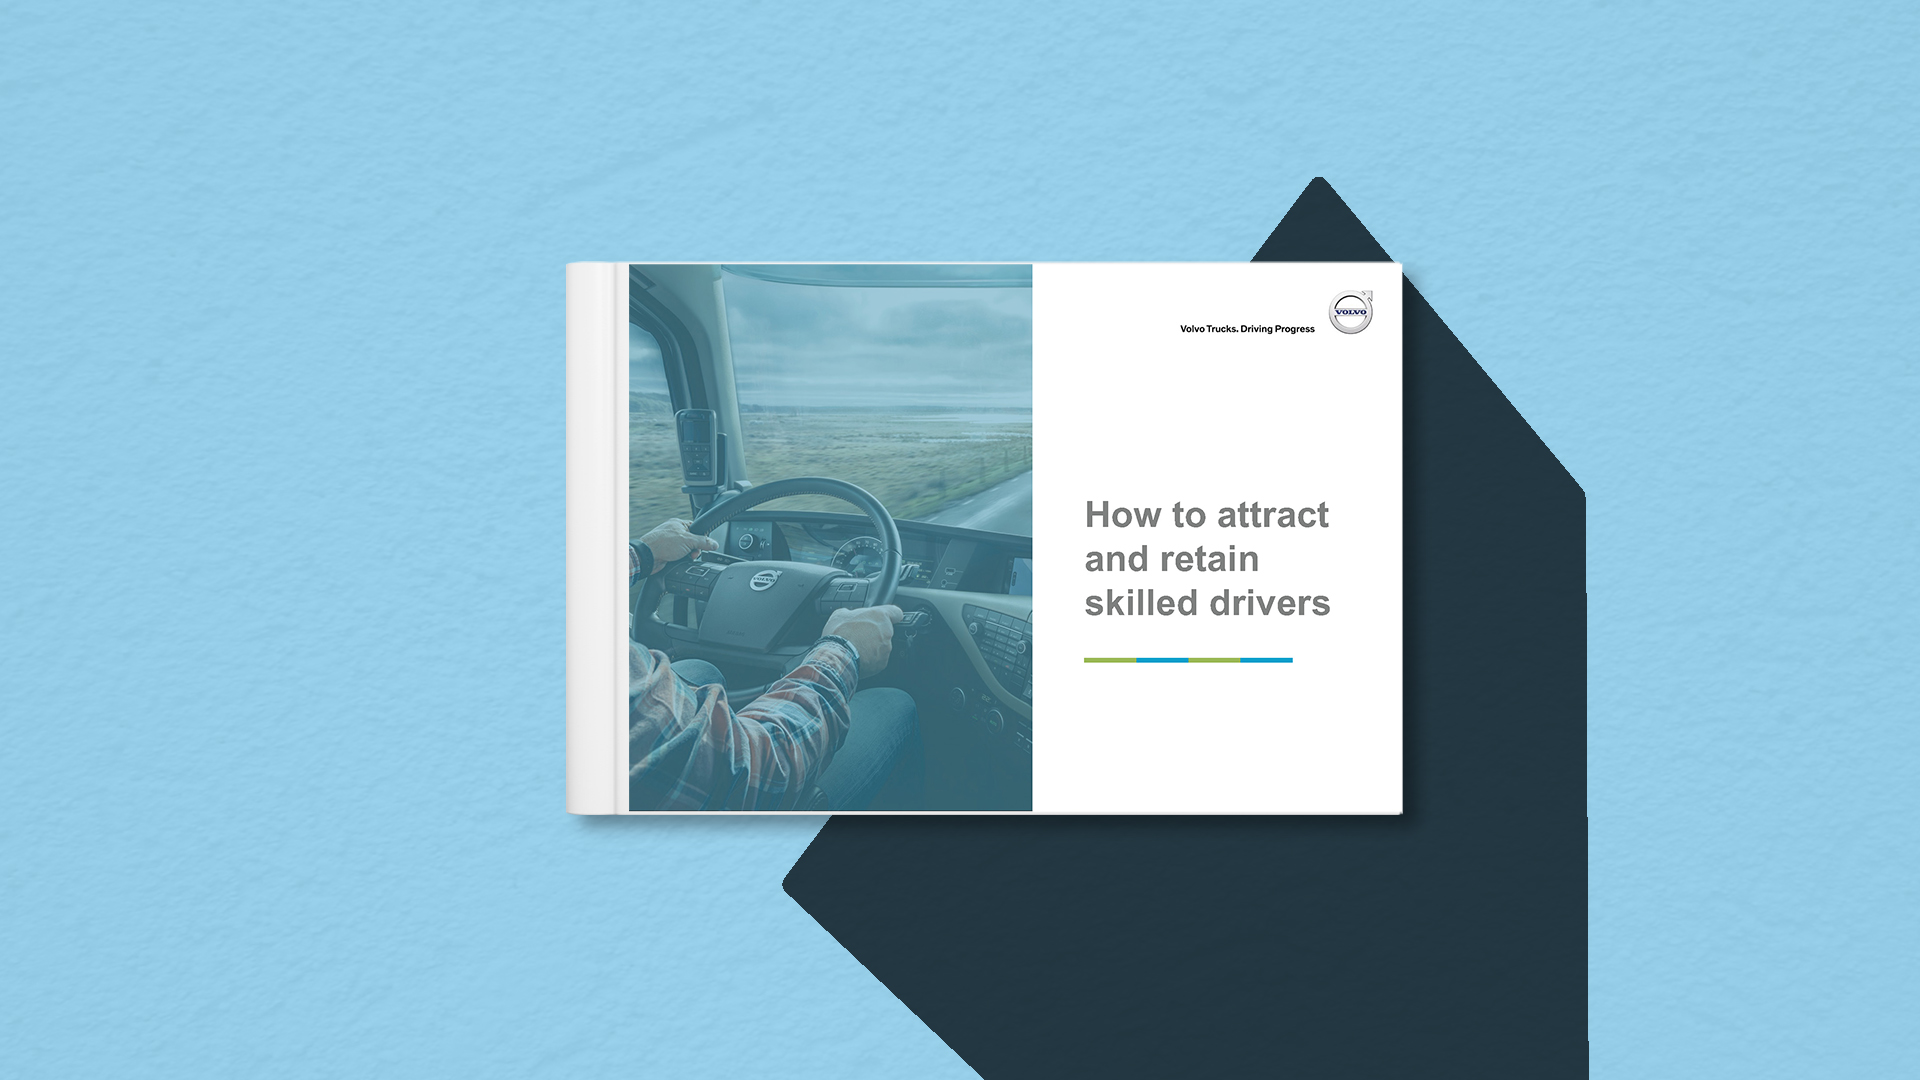 LandingPage_Image_How to attract and retain skilled drivers